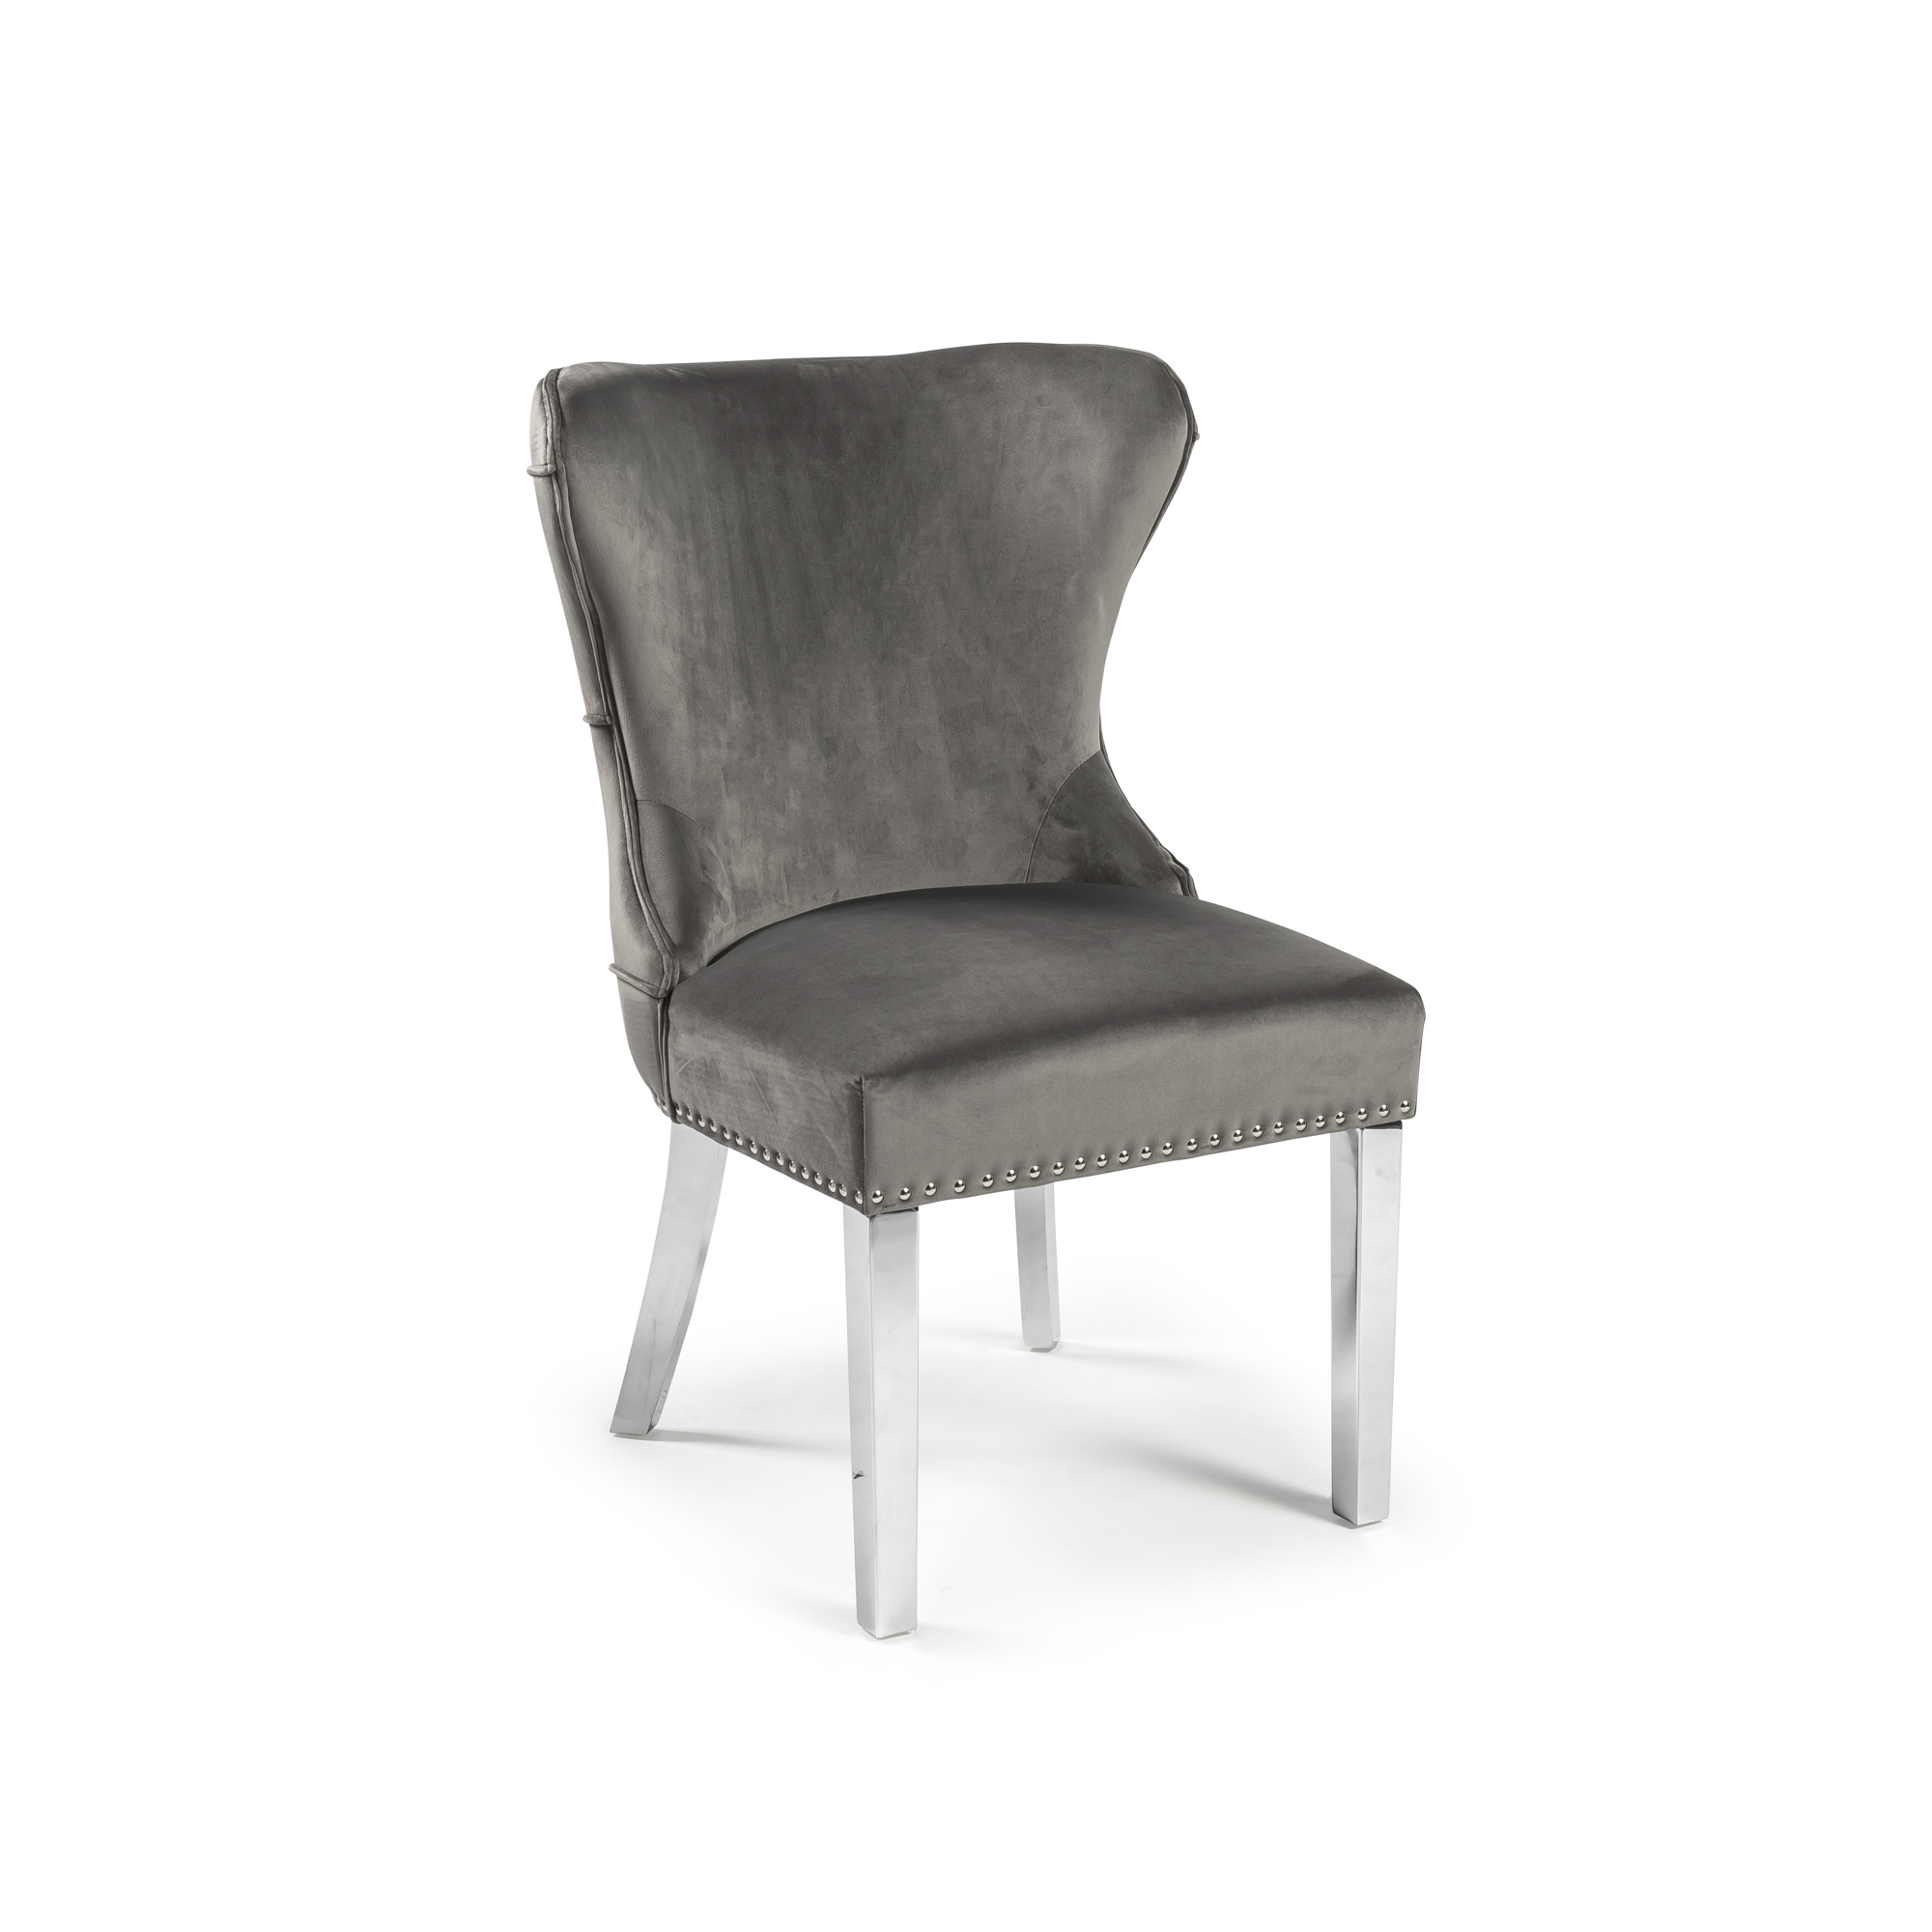 Grey Brushed Velvet Dining Chair with Steel Legs